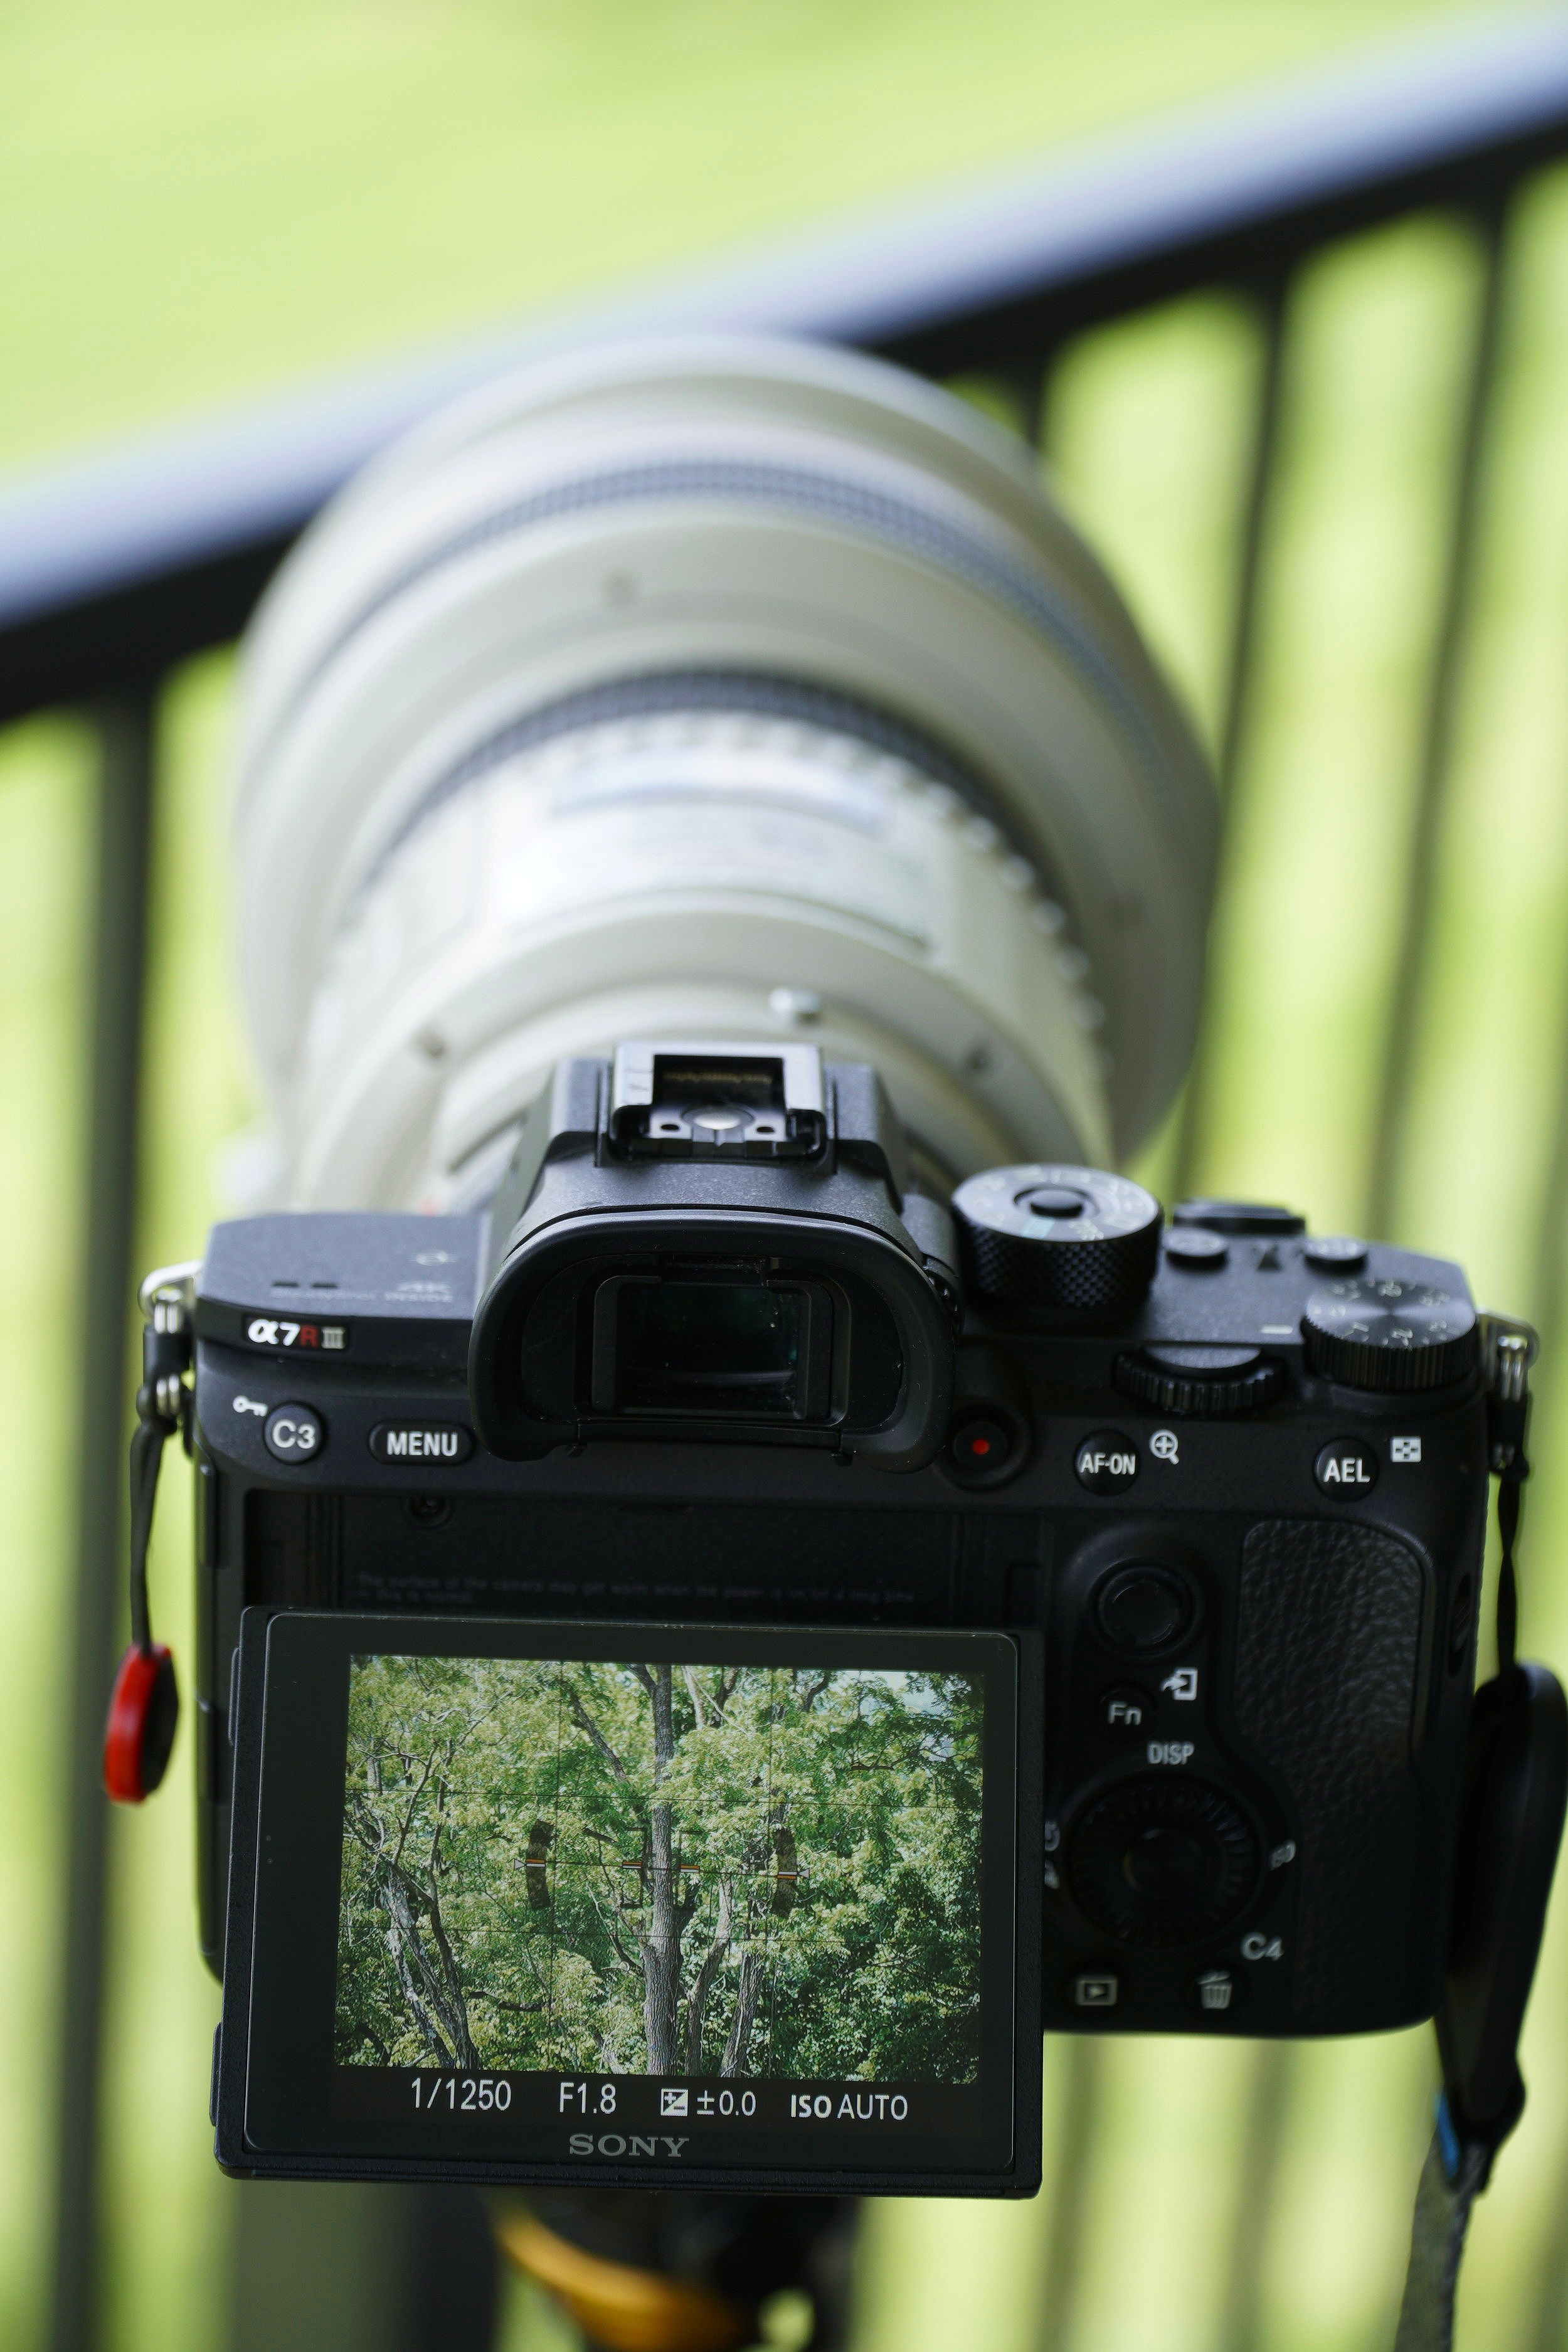 Autofocus is fast and accurate at any aperture